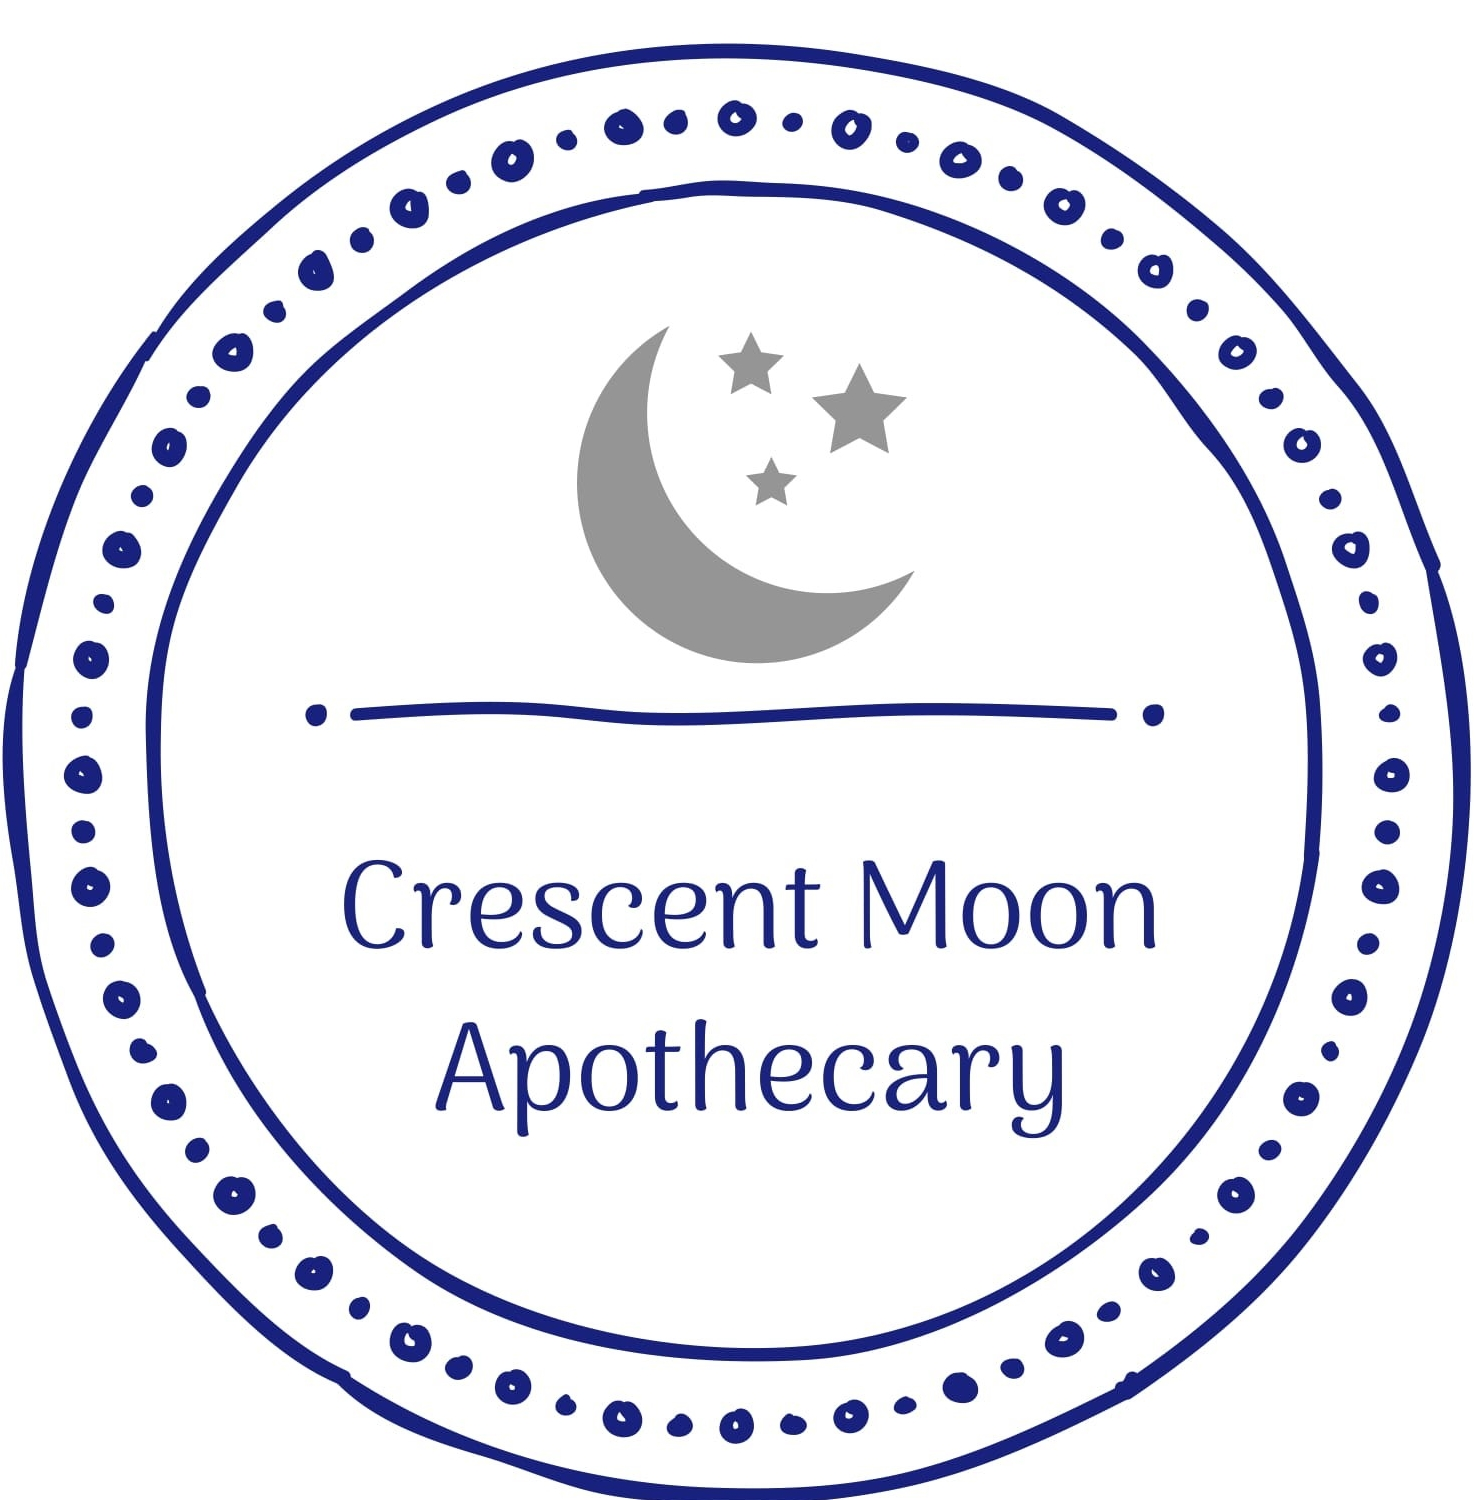 Crescent Moon Apothecary